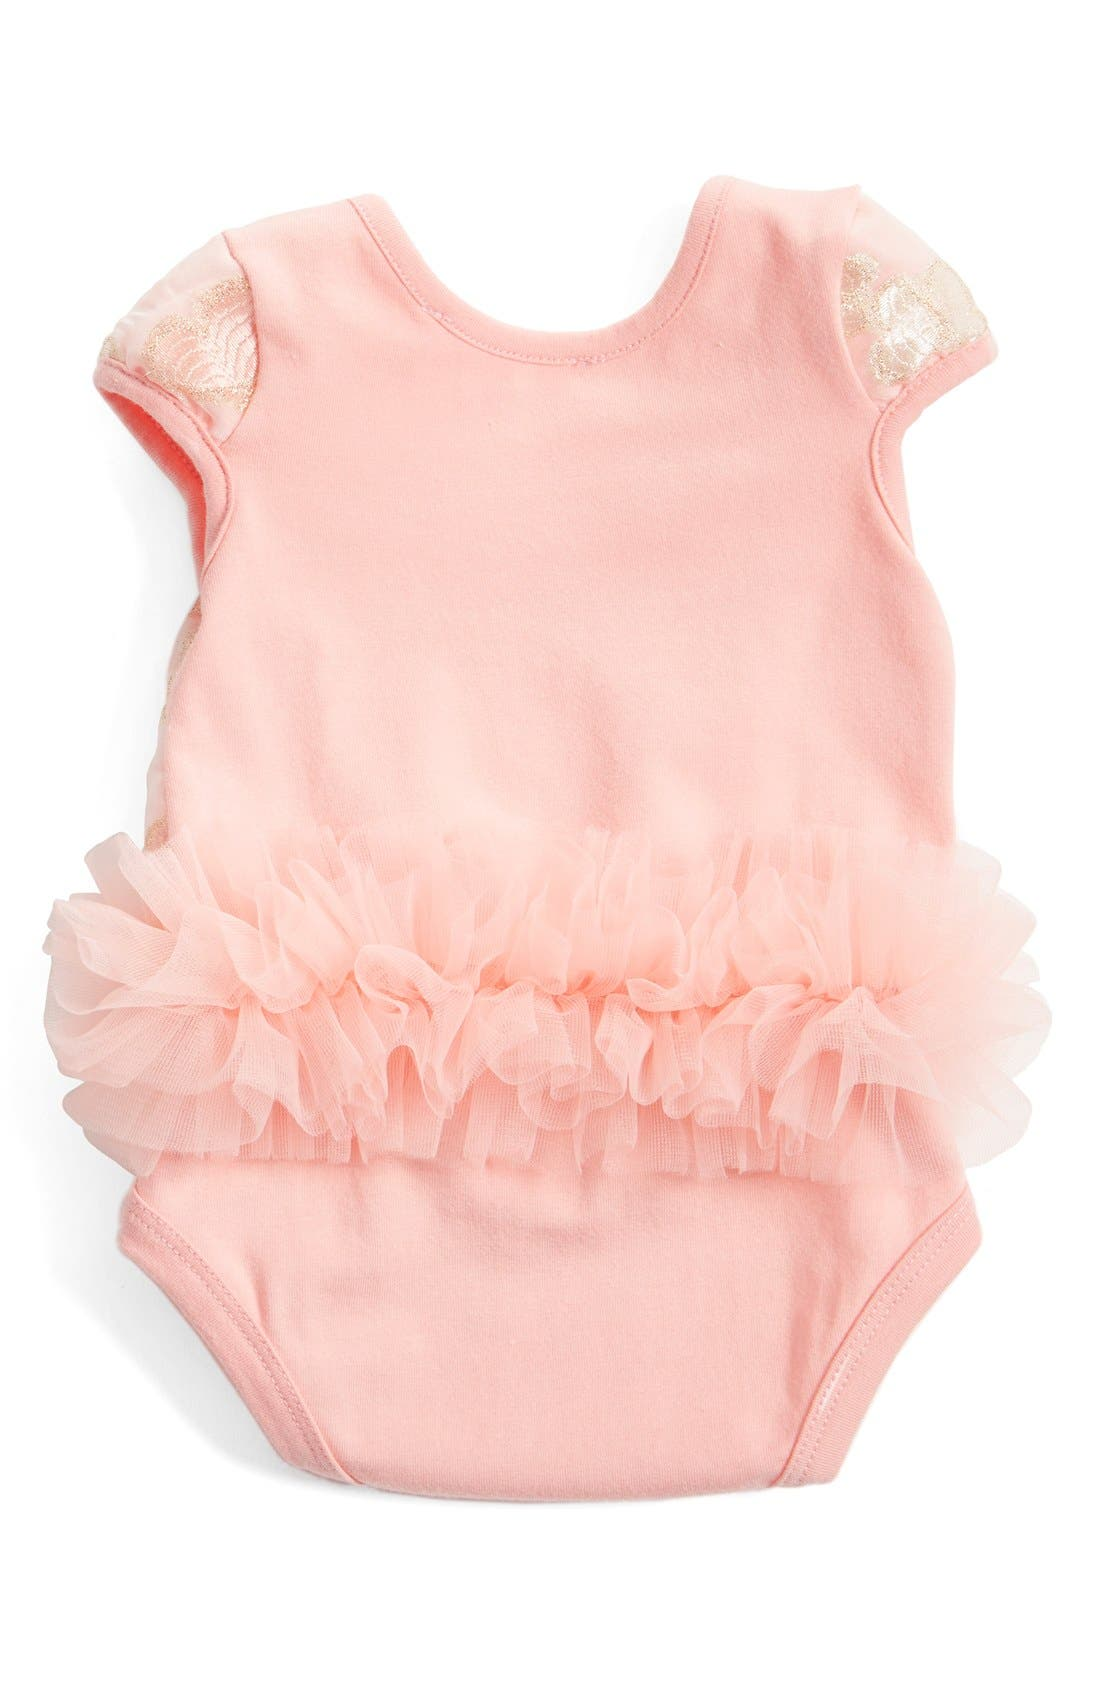 Tutu Bodysuit,                             Alternate thumbnail 2, color,                             PEACH